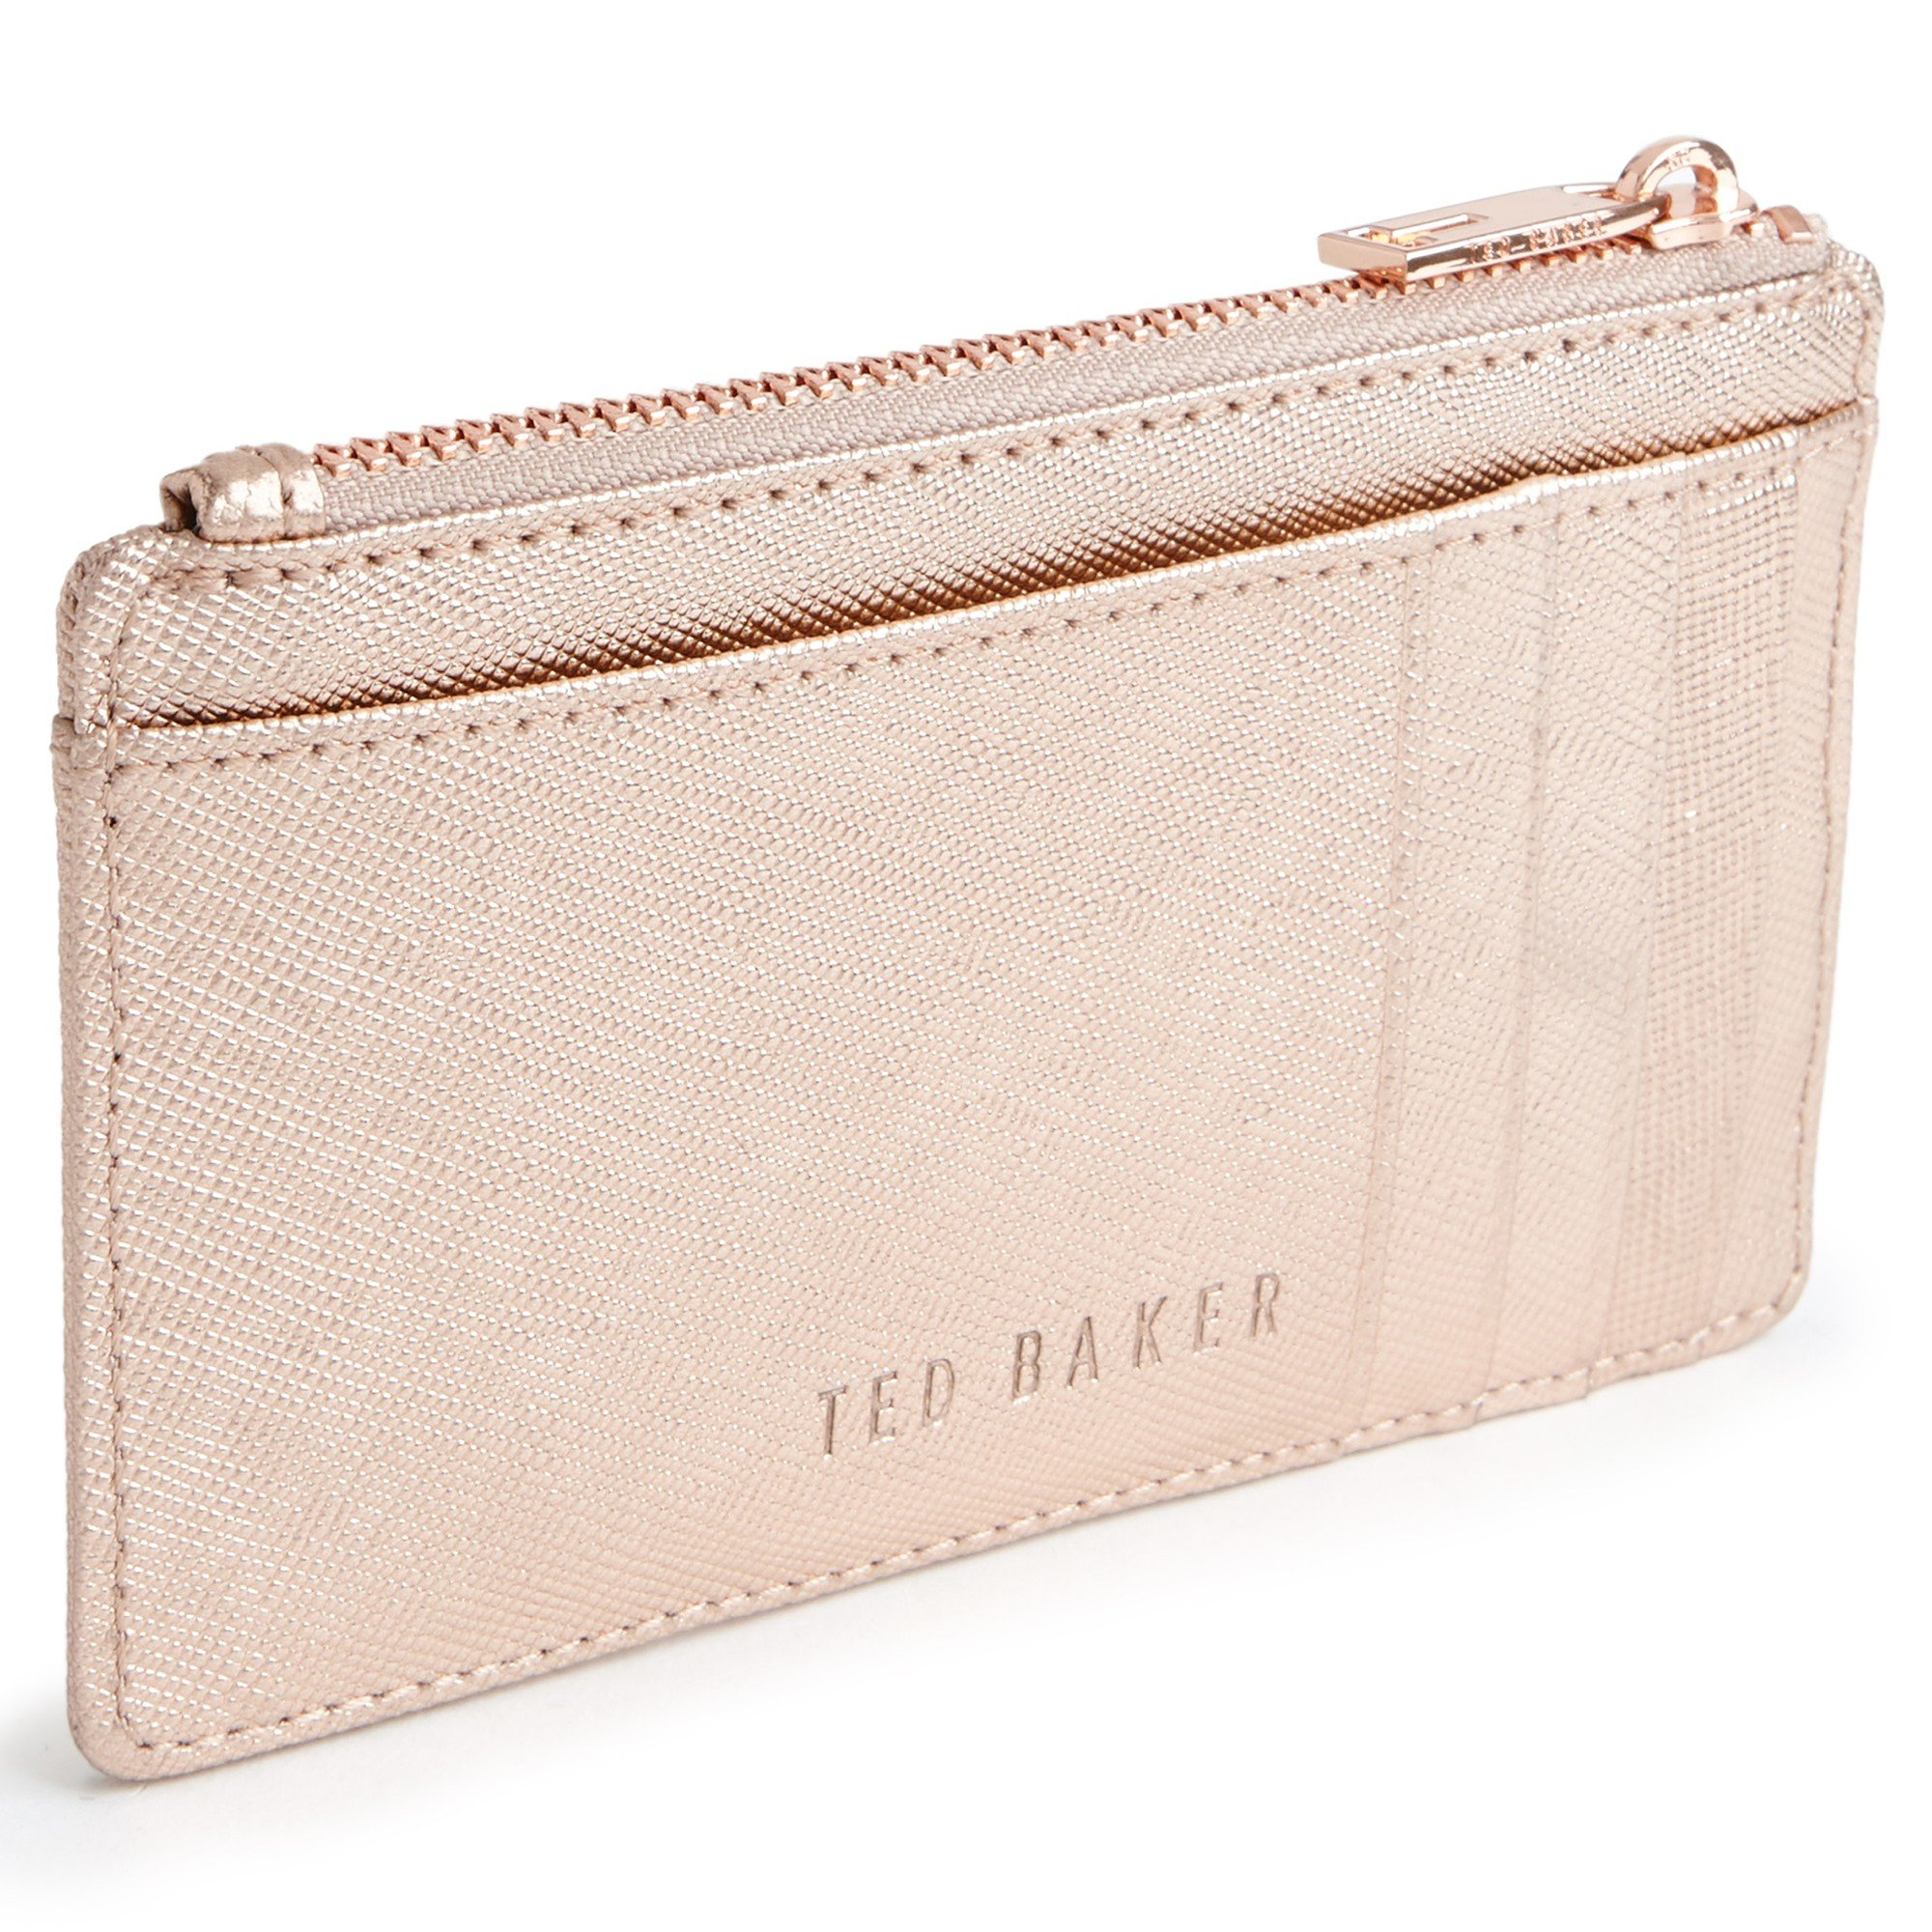 fad512af620a69 Ted Baker Crosshatch Leather Metallic Coin Purse In Pink Lyst